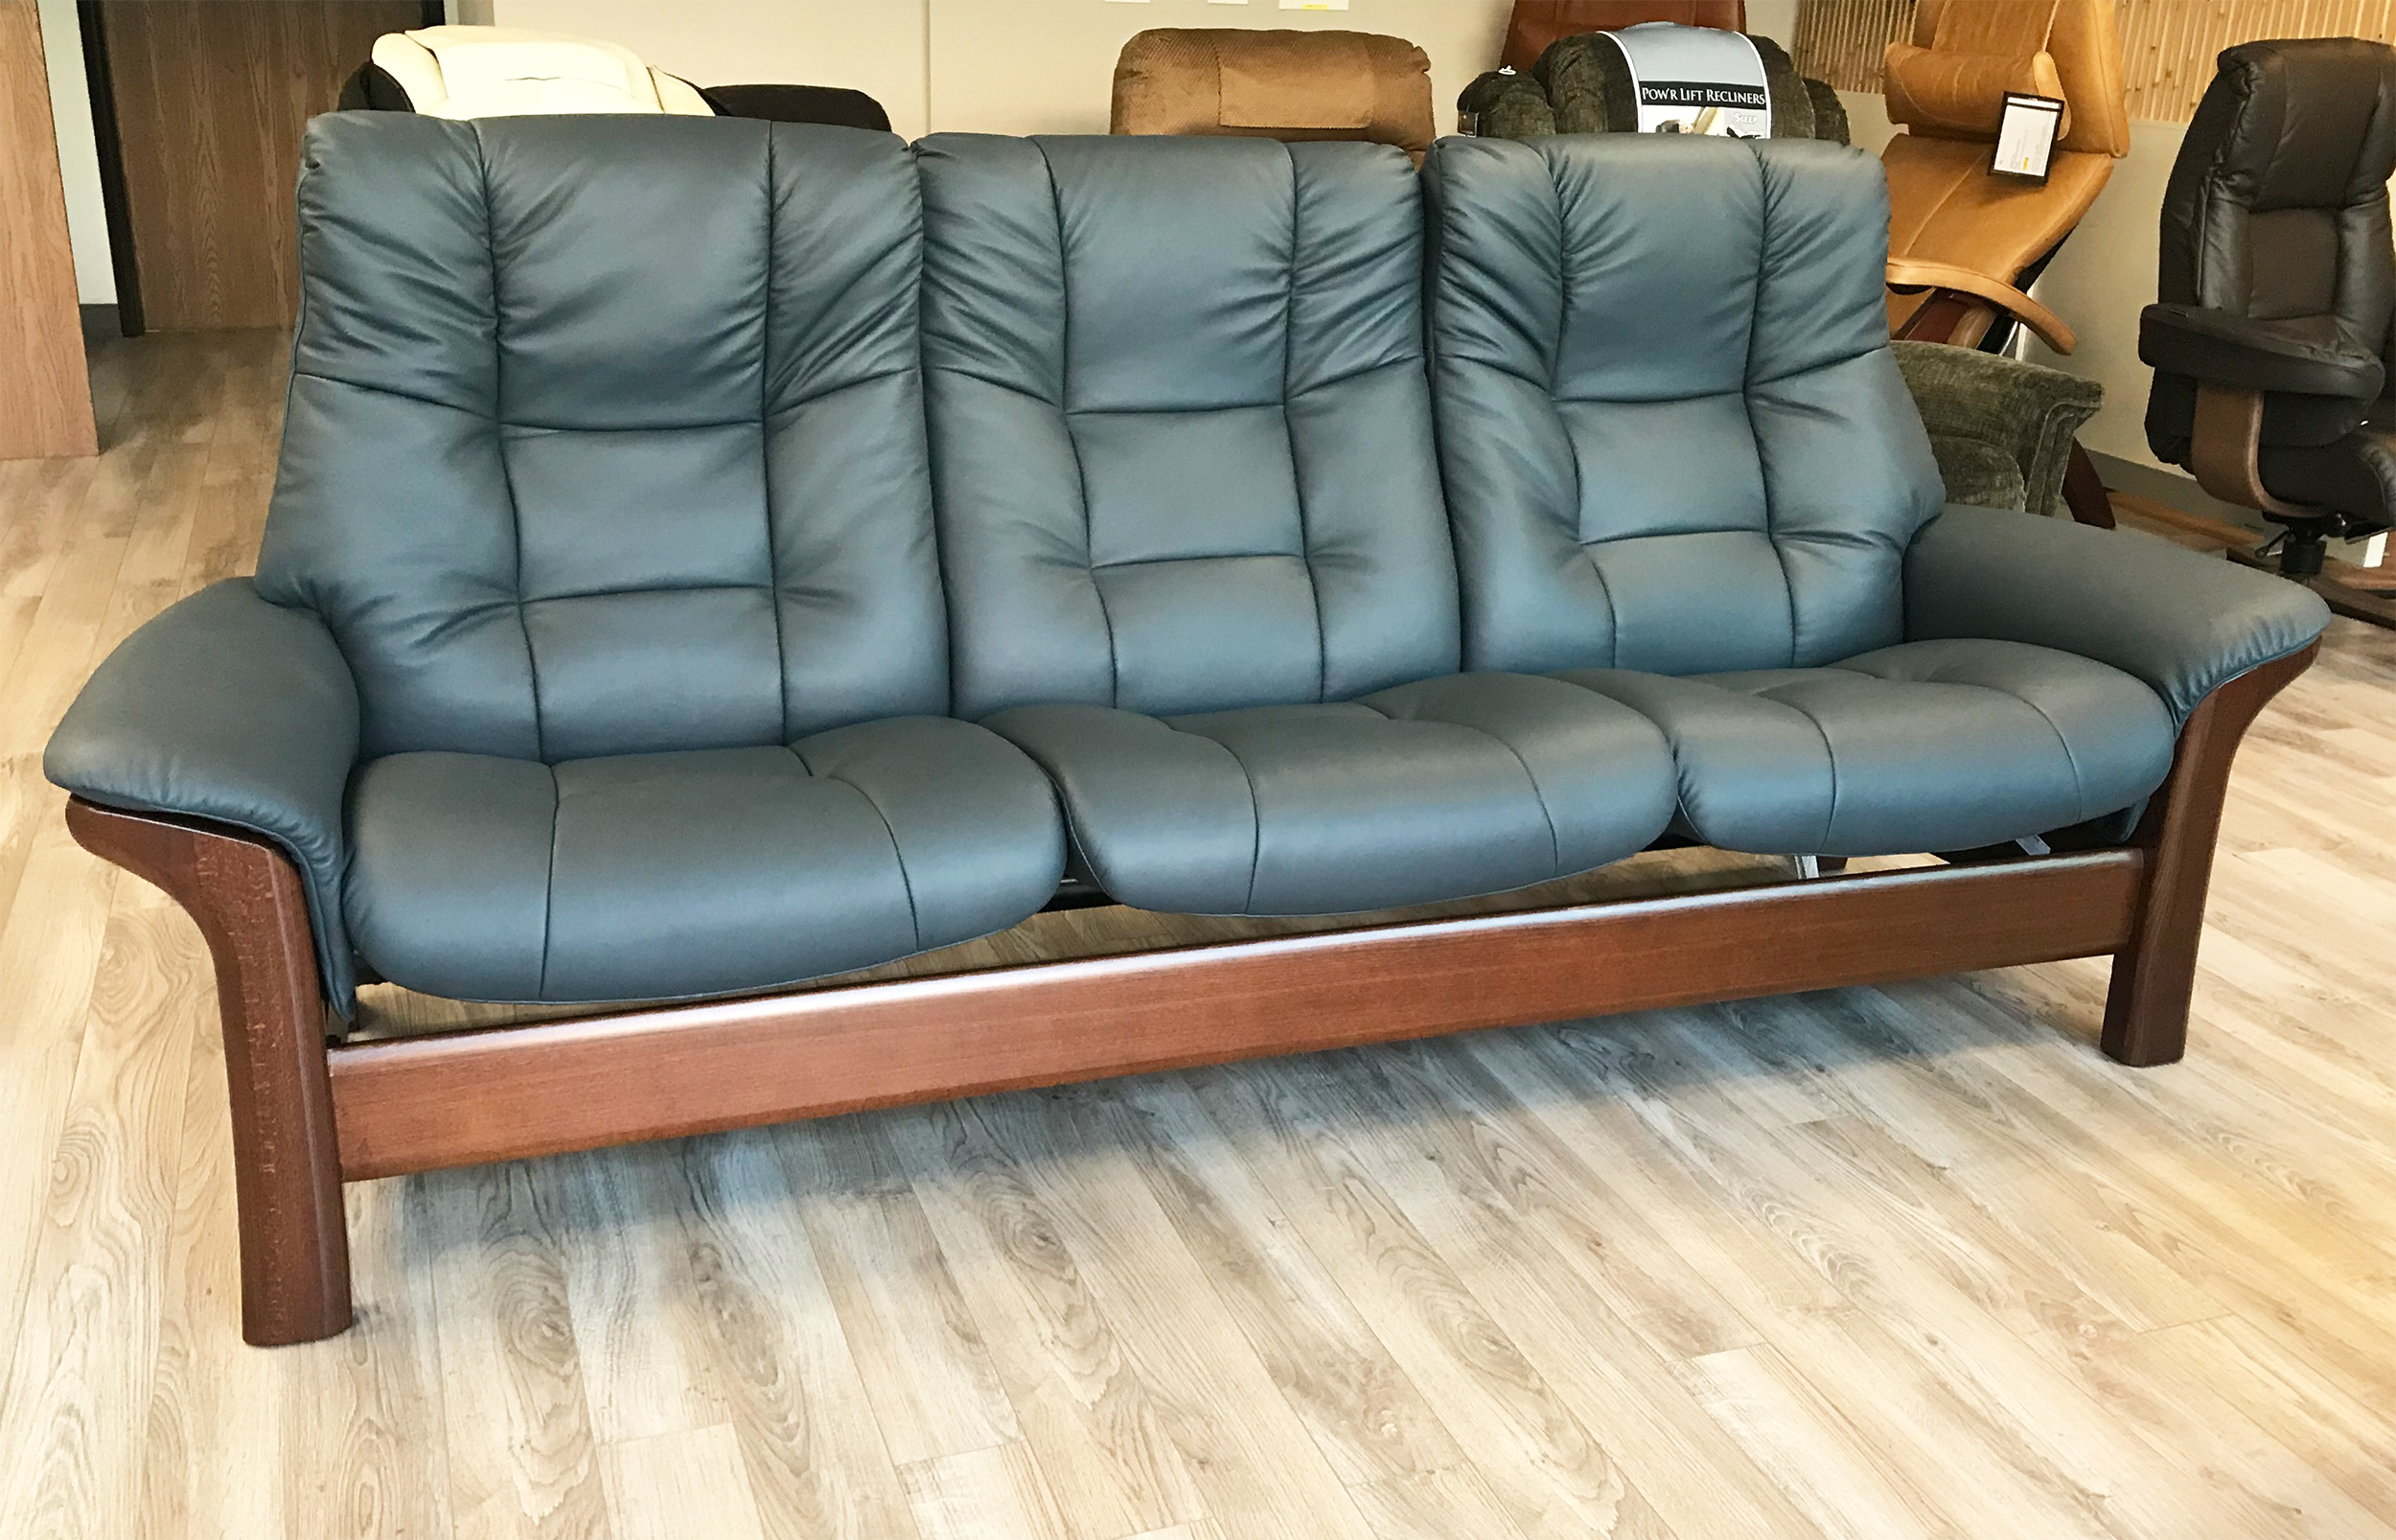 Stressless Buckingham 3 Seat High Back Sofa Paloma Shadow Blue Leather by  Ekornes